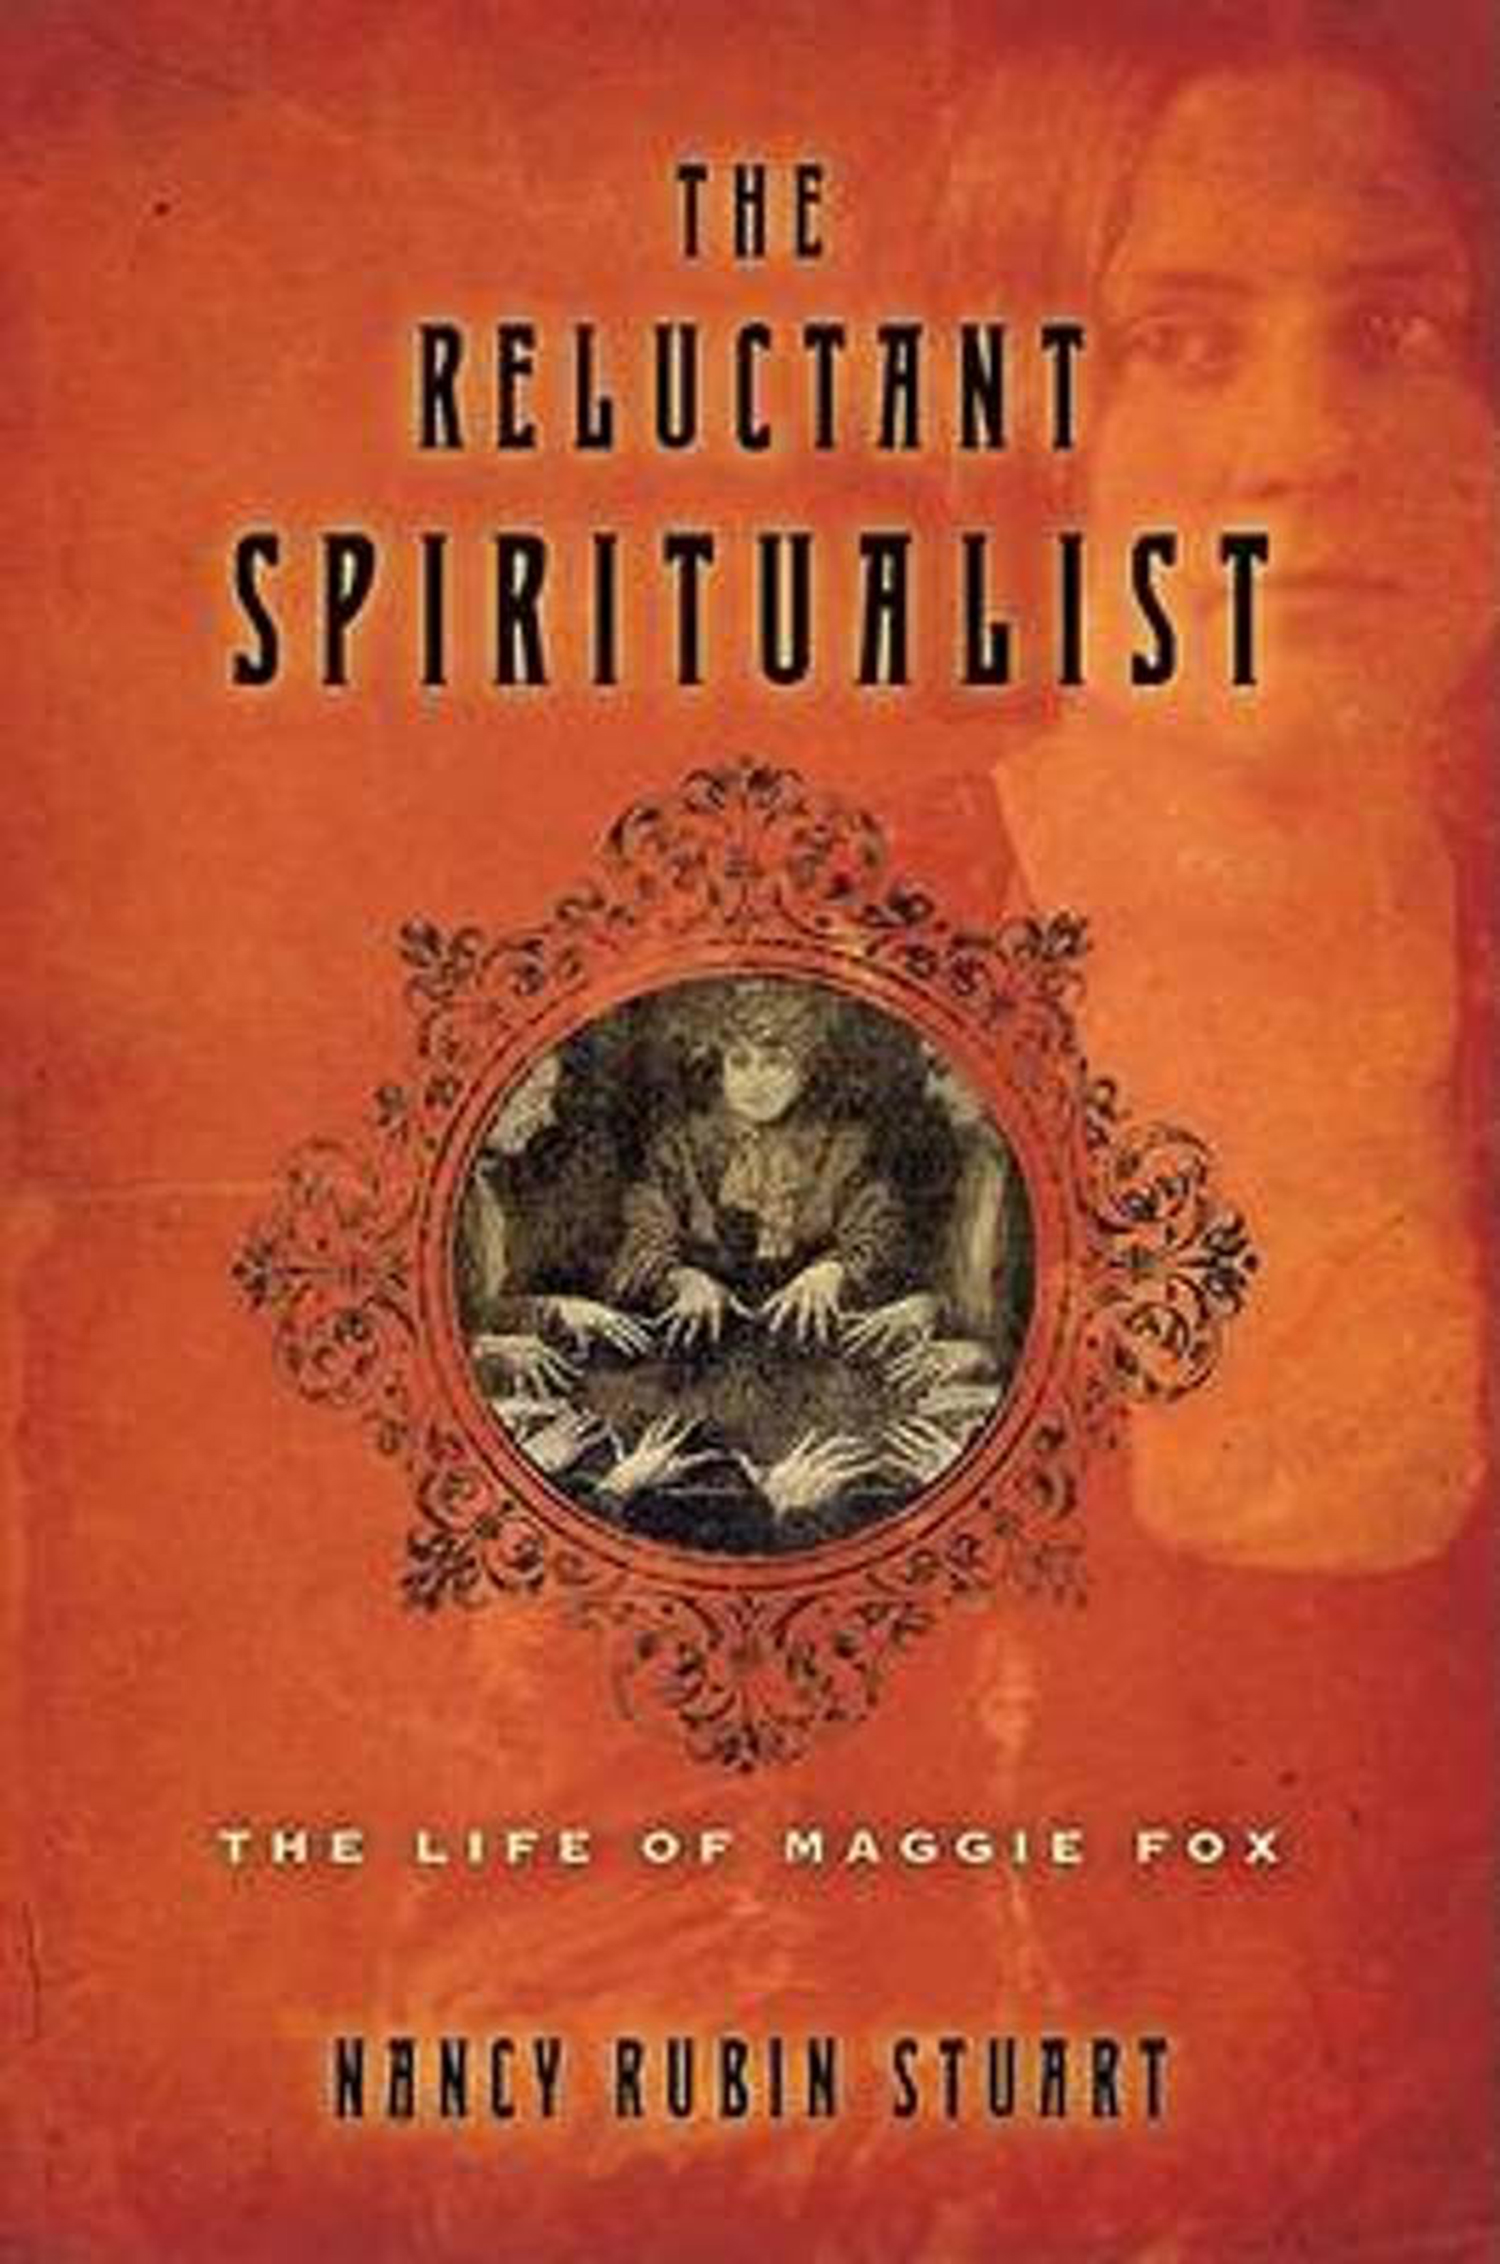 The Reluctant Spiritualist.jpg